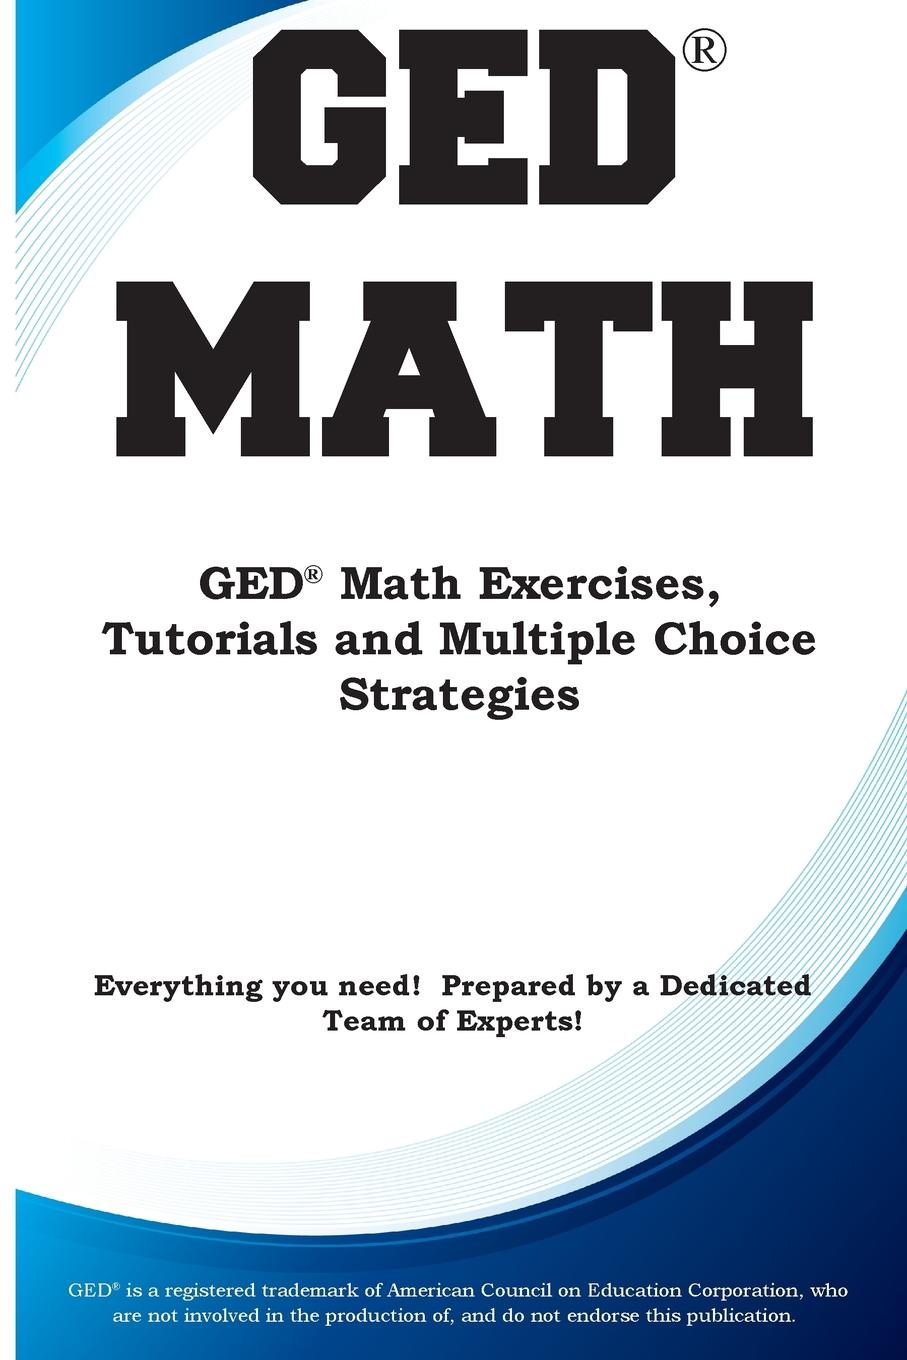 Complete Test Preparation Inc. GED Math. Math Exercises, Tutorials and Multiple Choice Strategies complete test preparation inc compass mathematics practice math exercises tutorials and multiple choice strategies